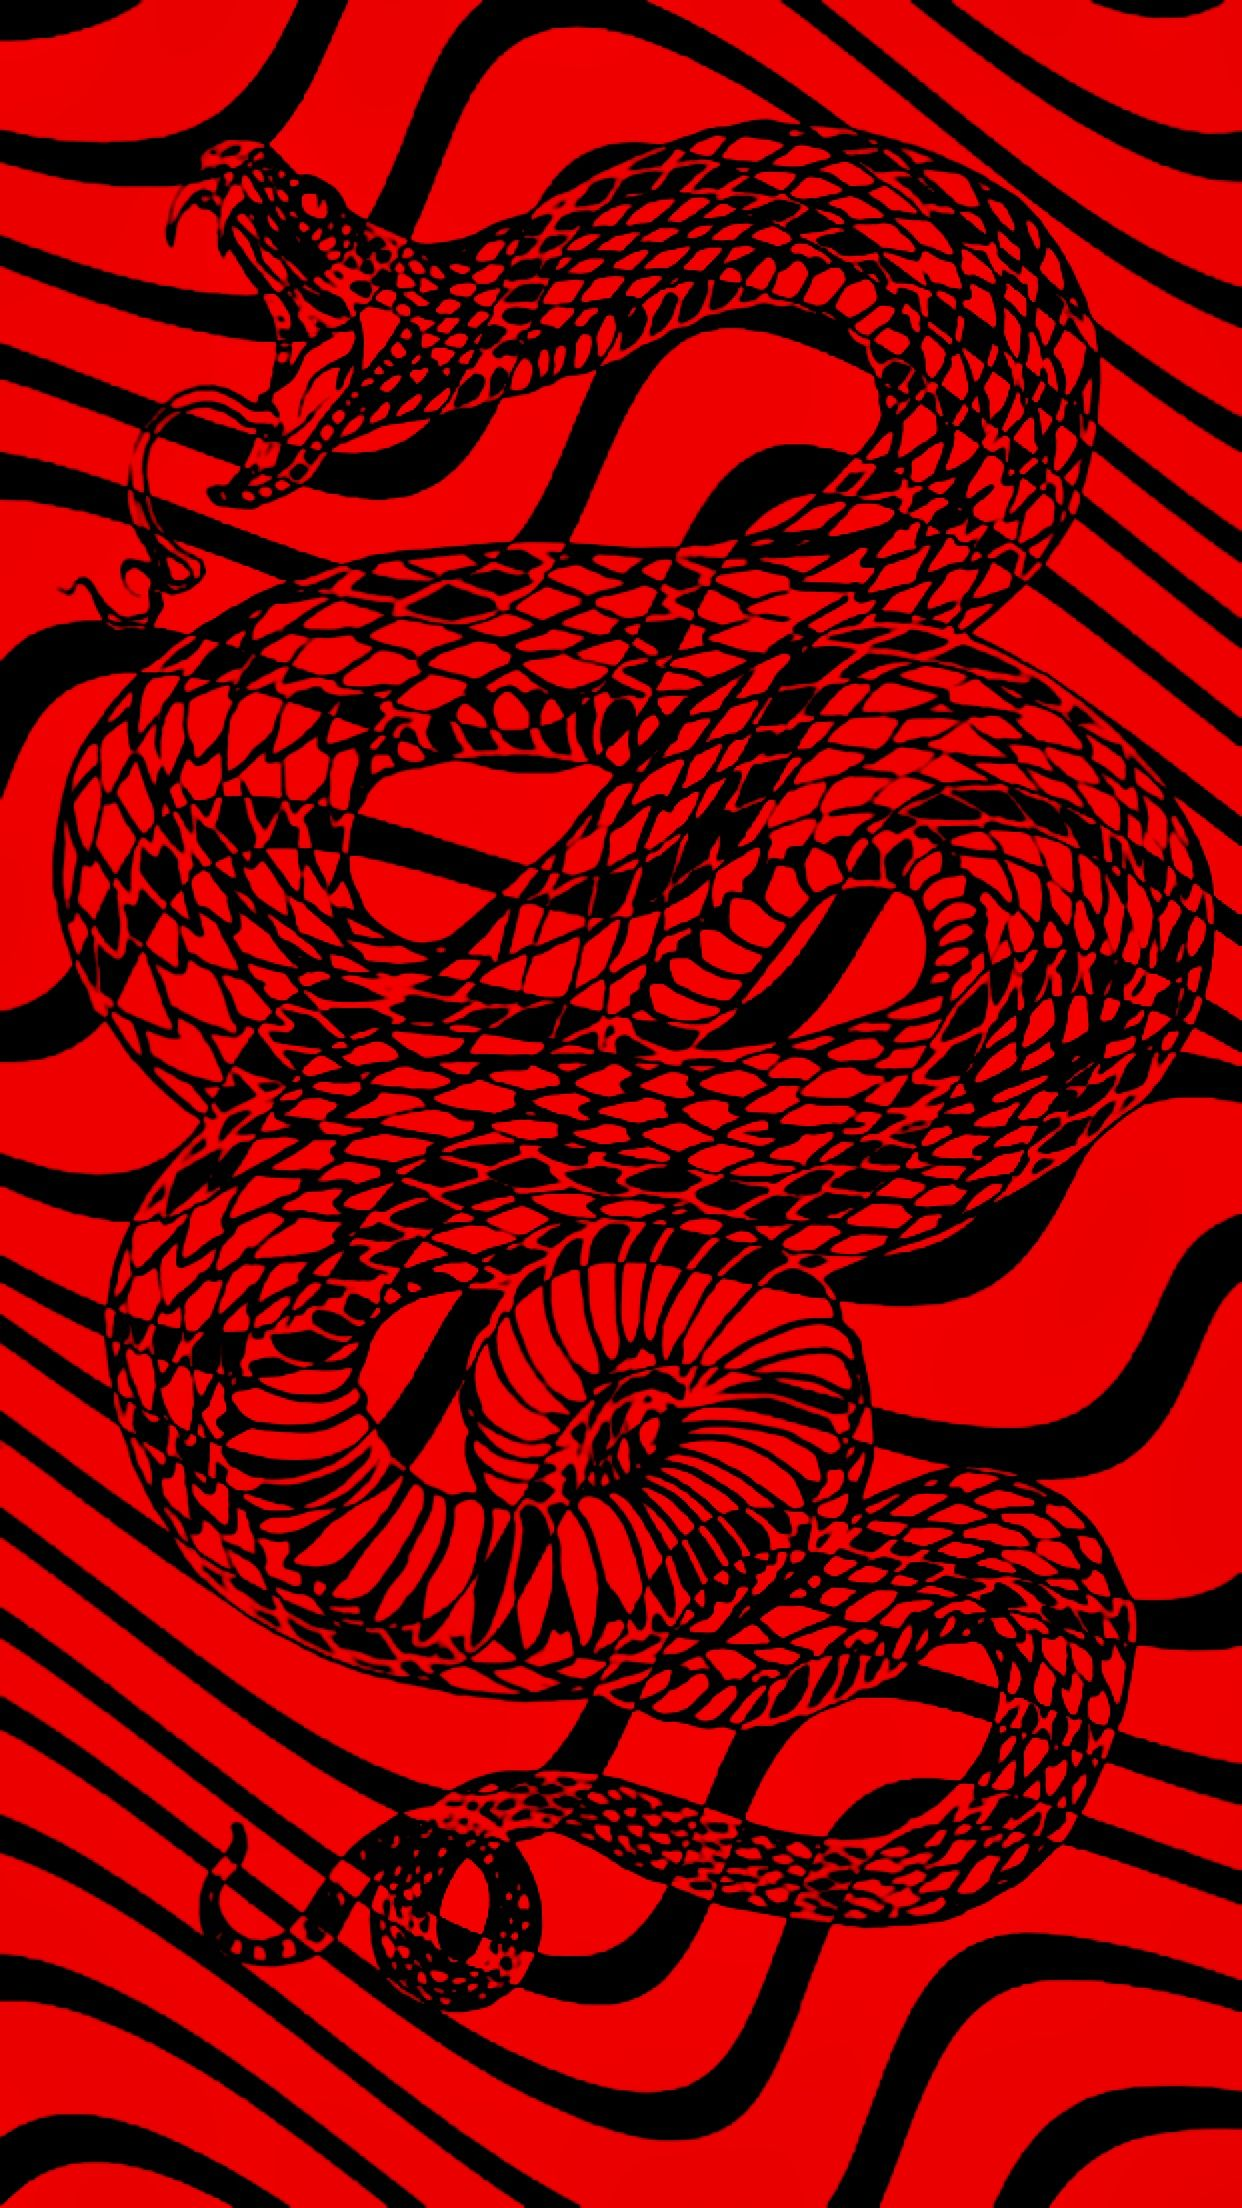 red and black snake pewdiepie wallpaper trippy pattern HD